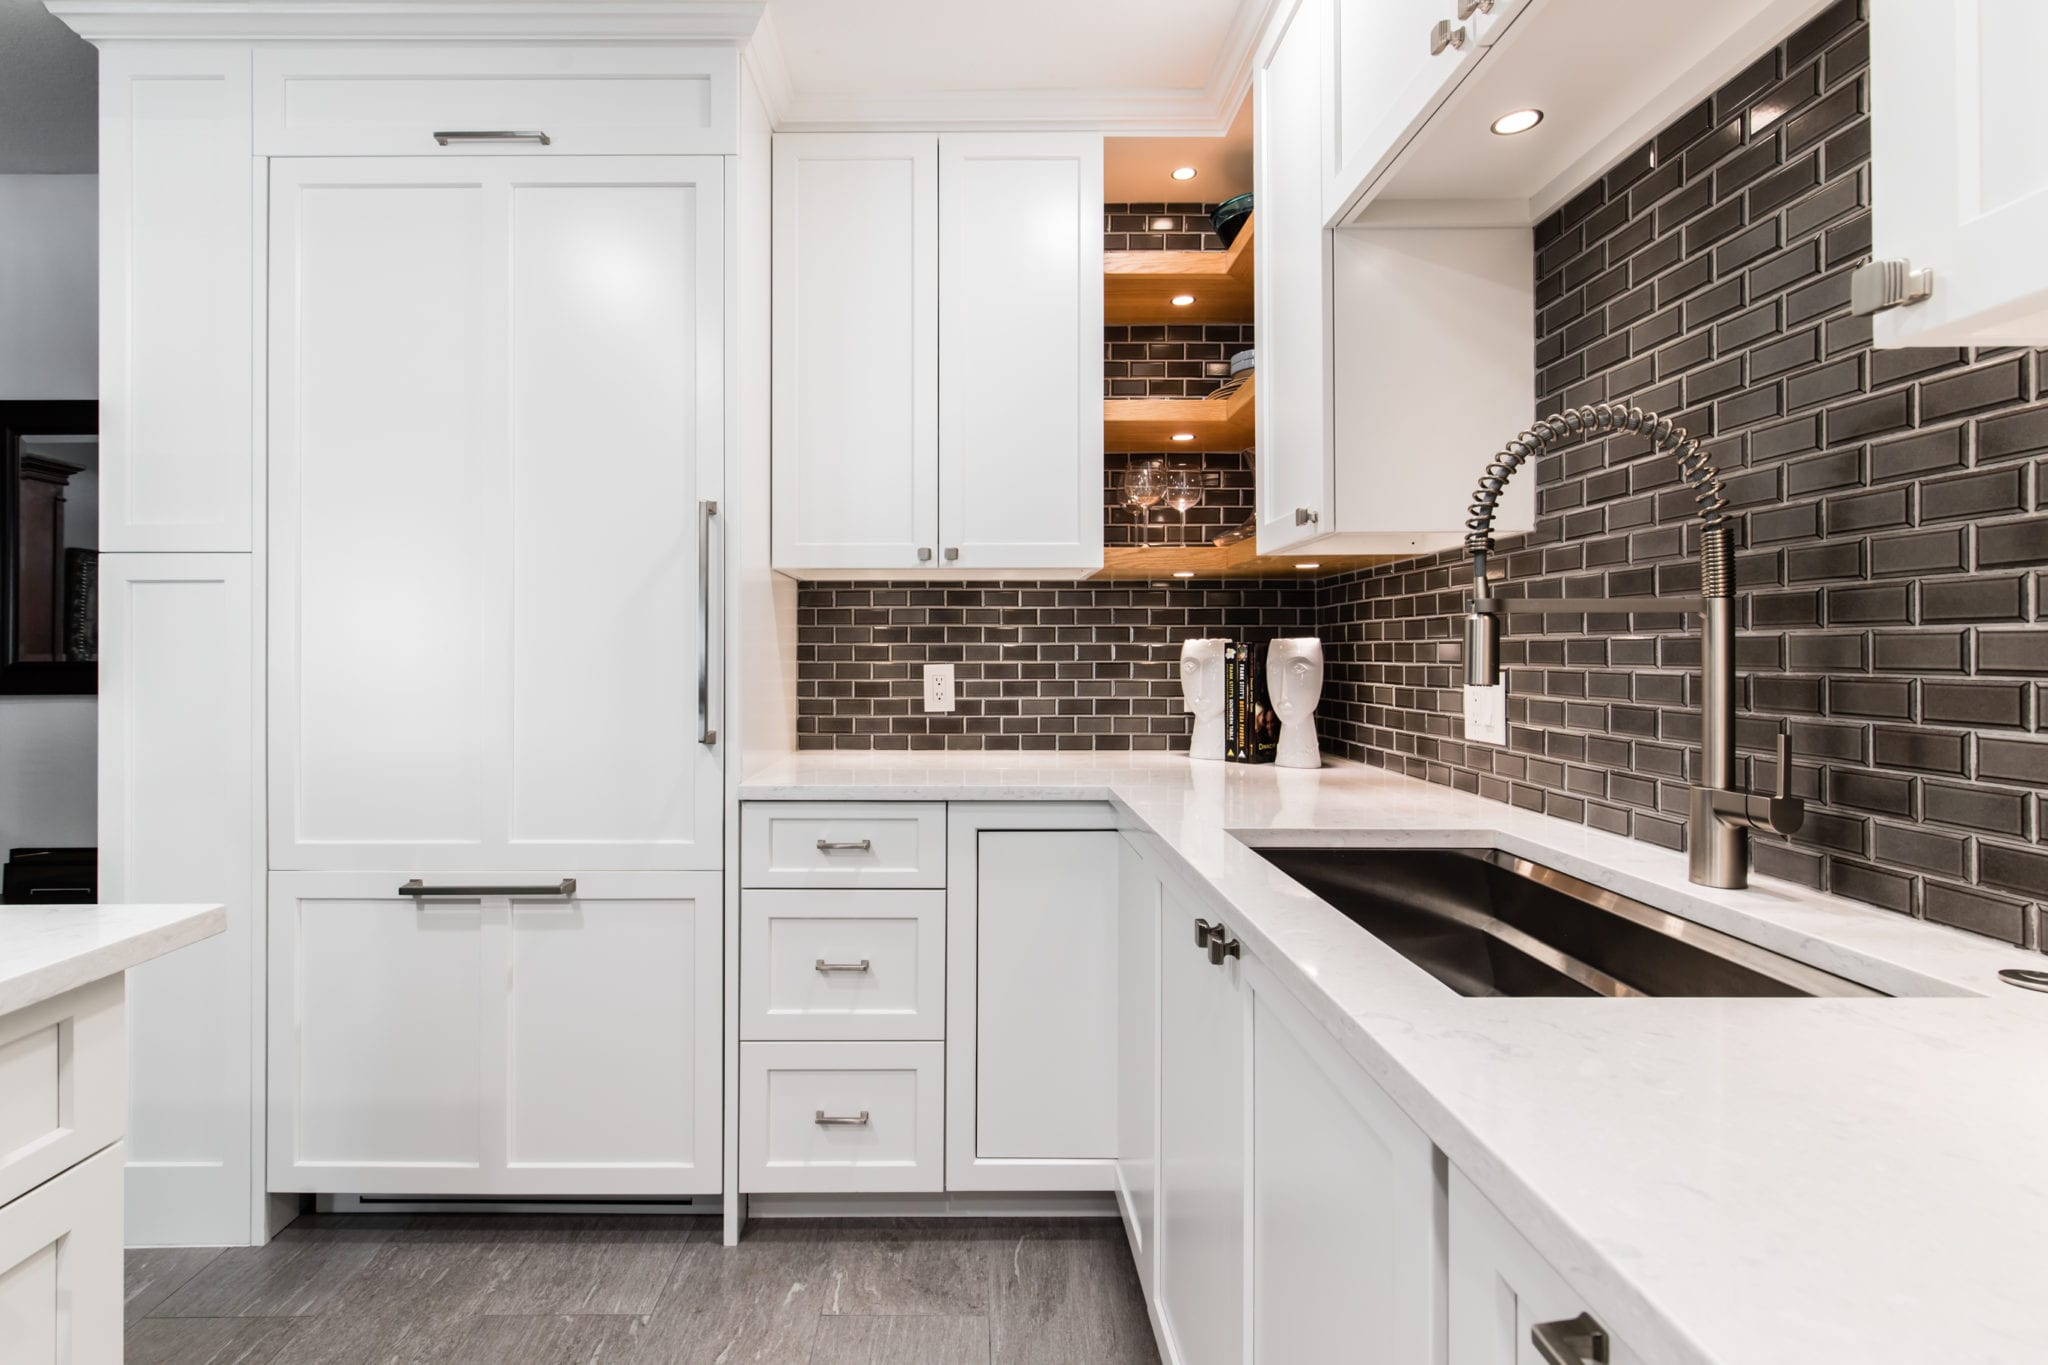 Renowned-Kitchen-Cabinetry-after-Greenway-Parks-Kitchen-Remodel-TX-75209